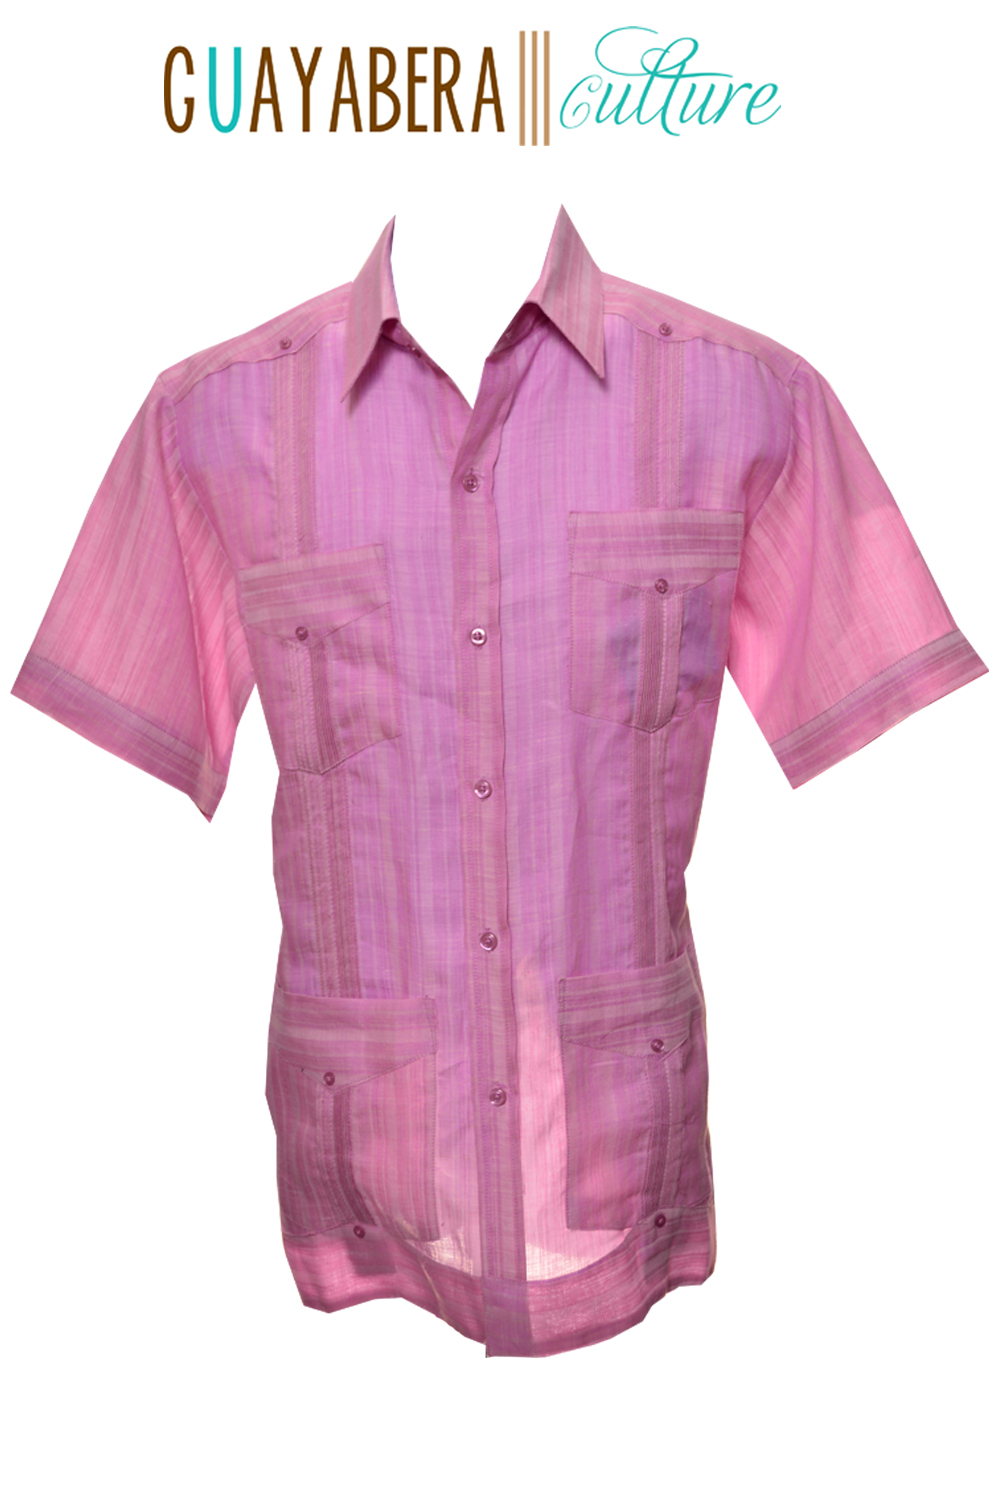 d921ba54 Port-au-Prince Short Sleeve Linen Guayabera. Price: From: $70.00 $55.00.  The ...